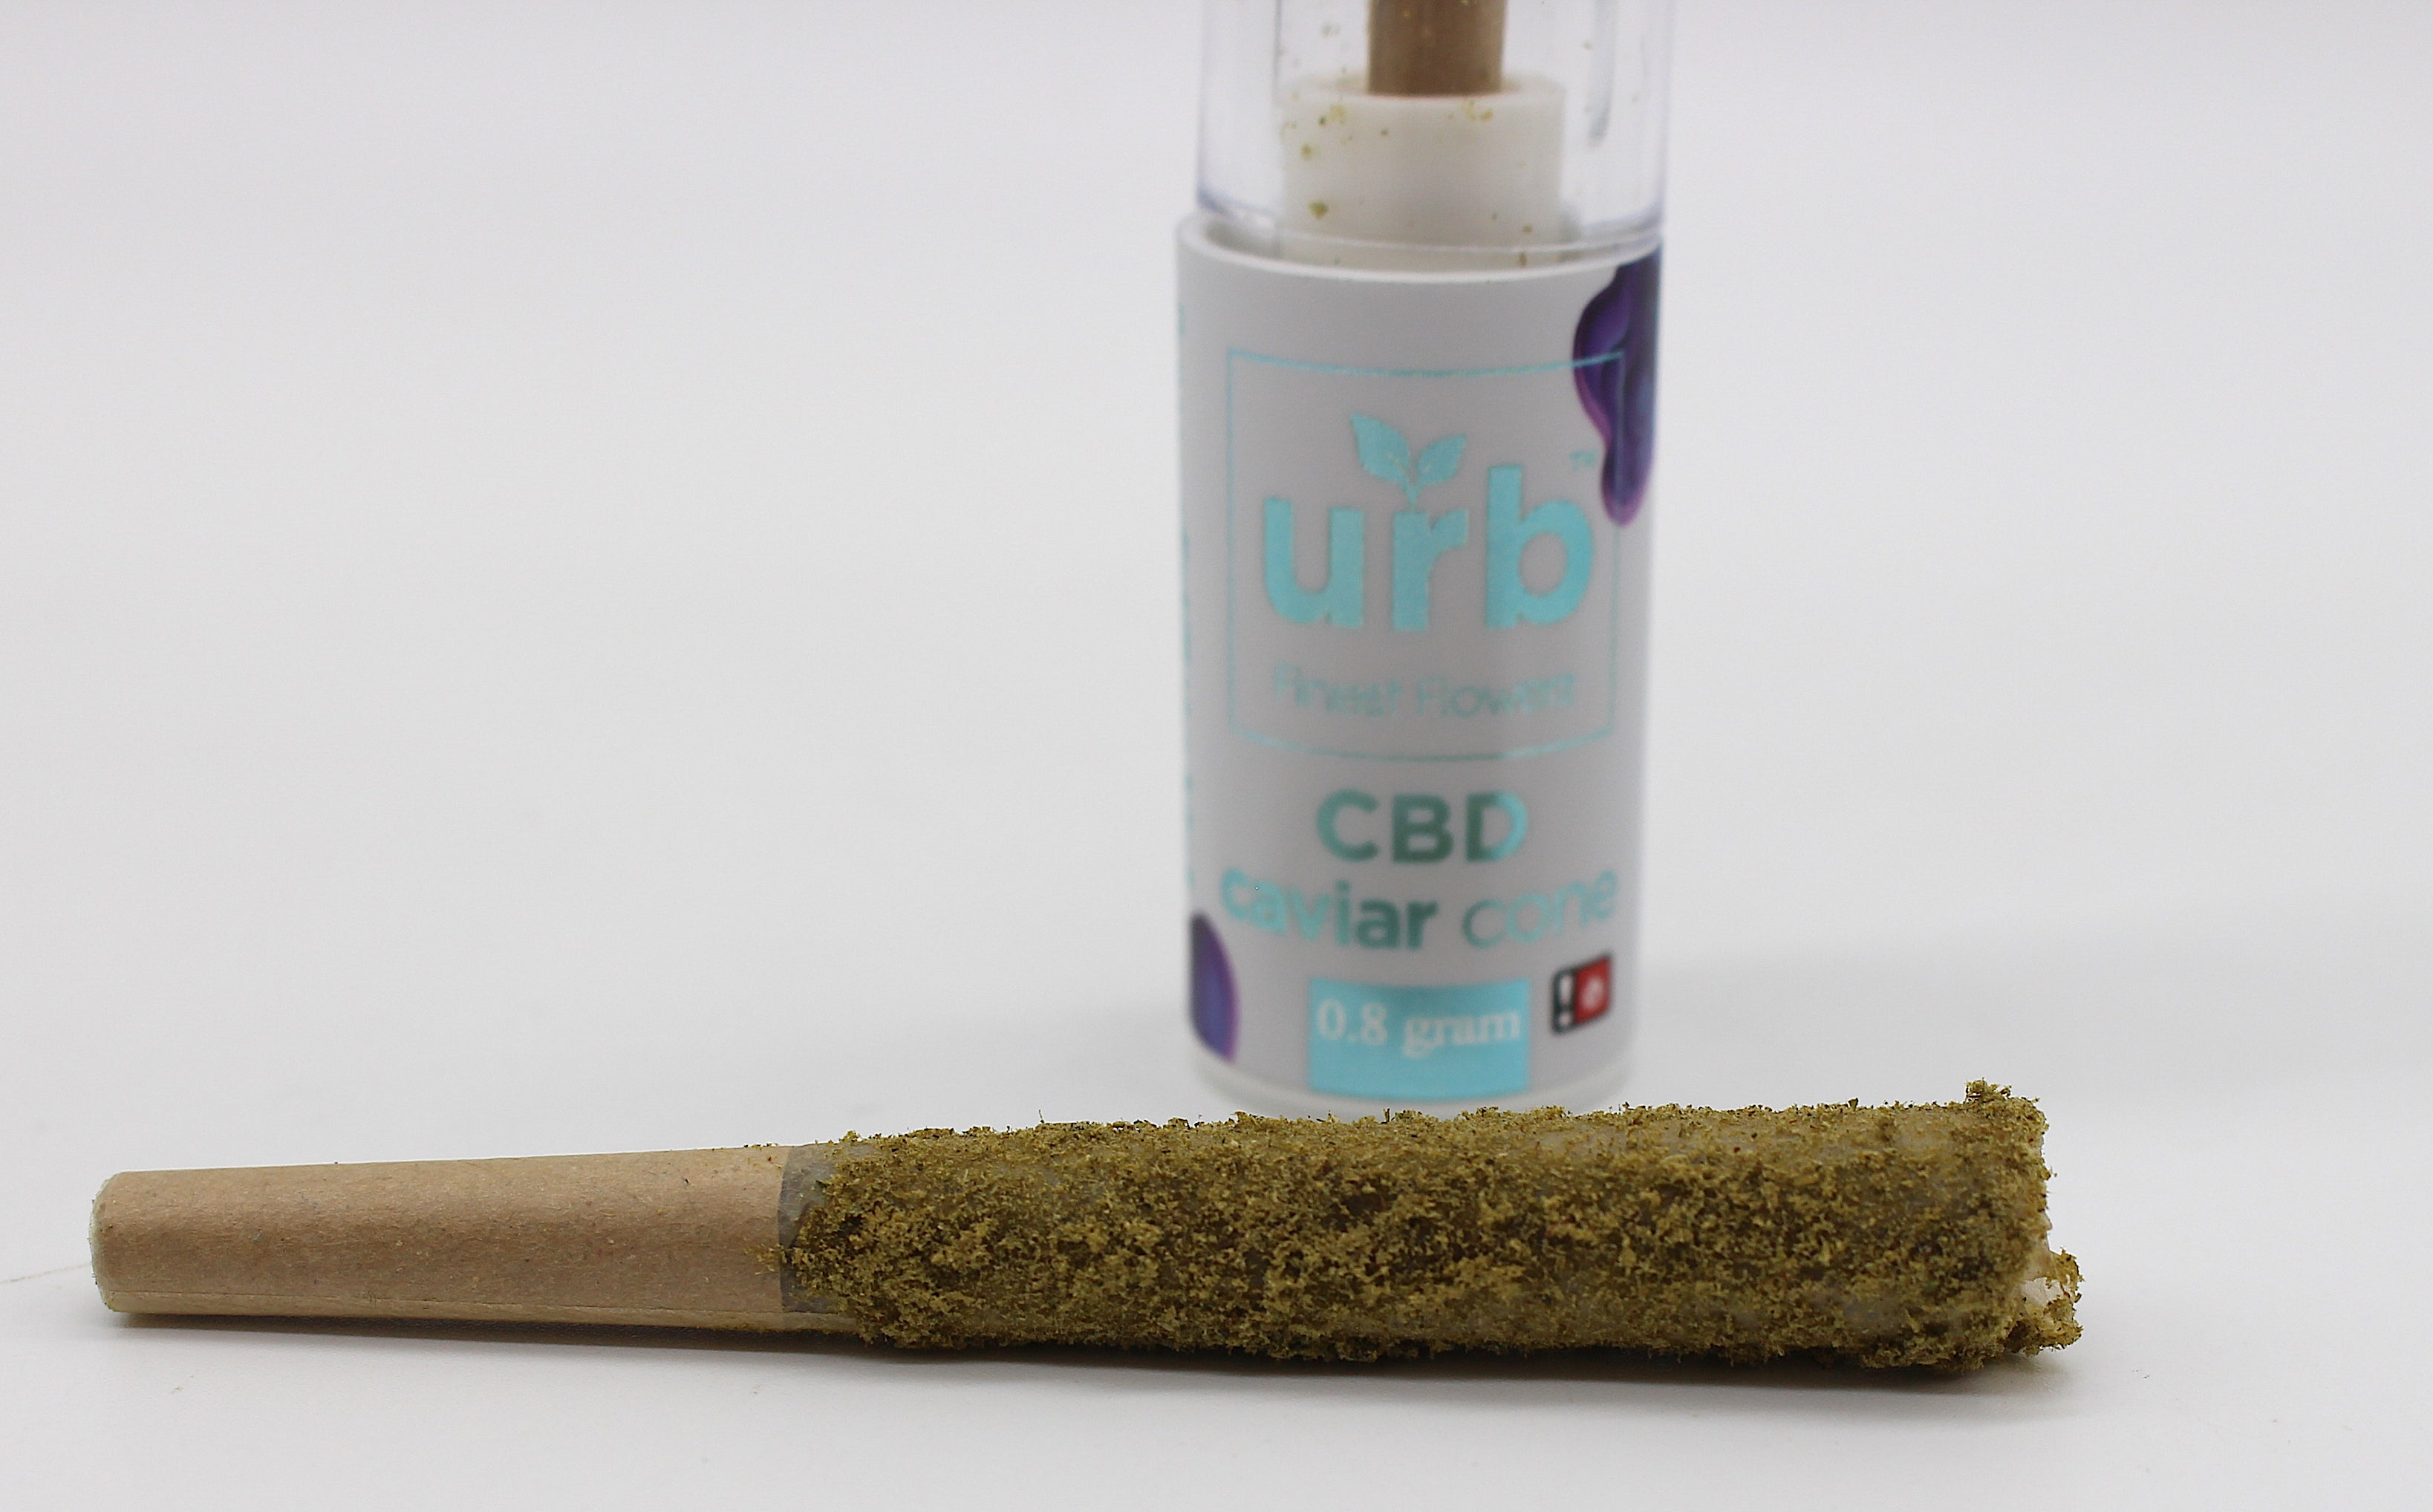 Urb Finest Flower -0.8g Kief Coated Caviar Cones